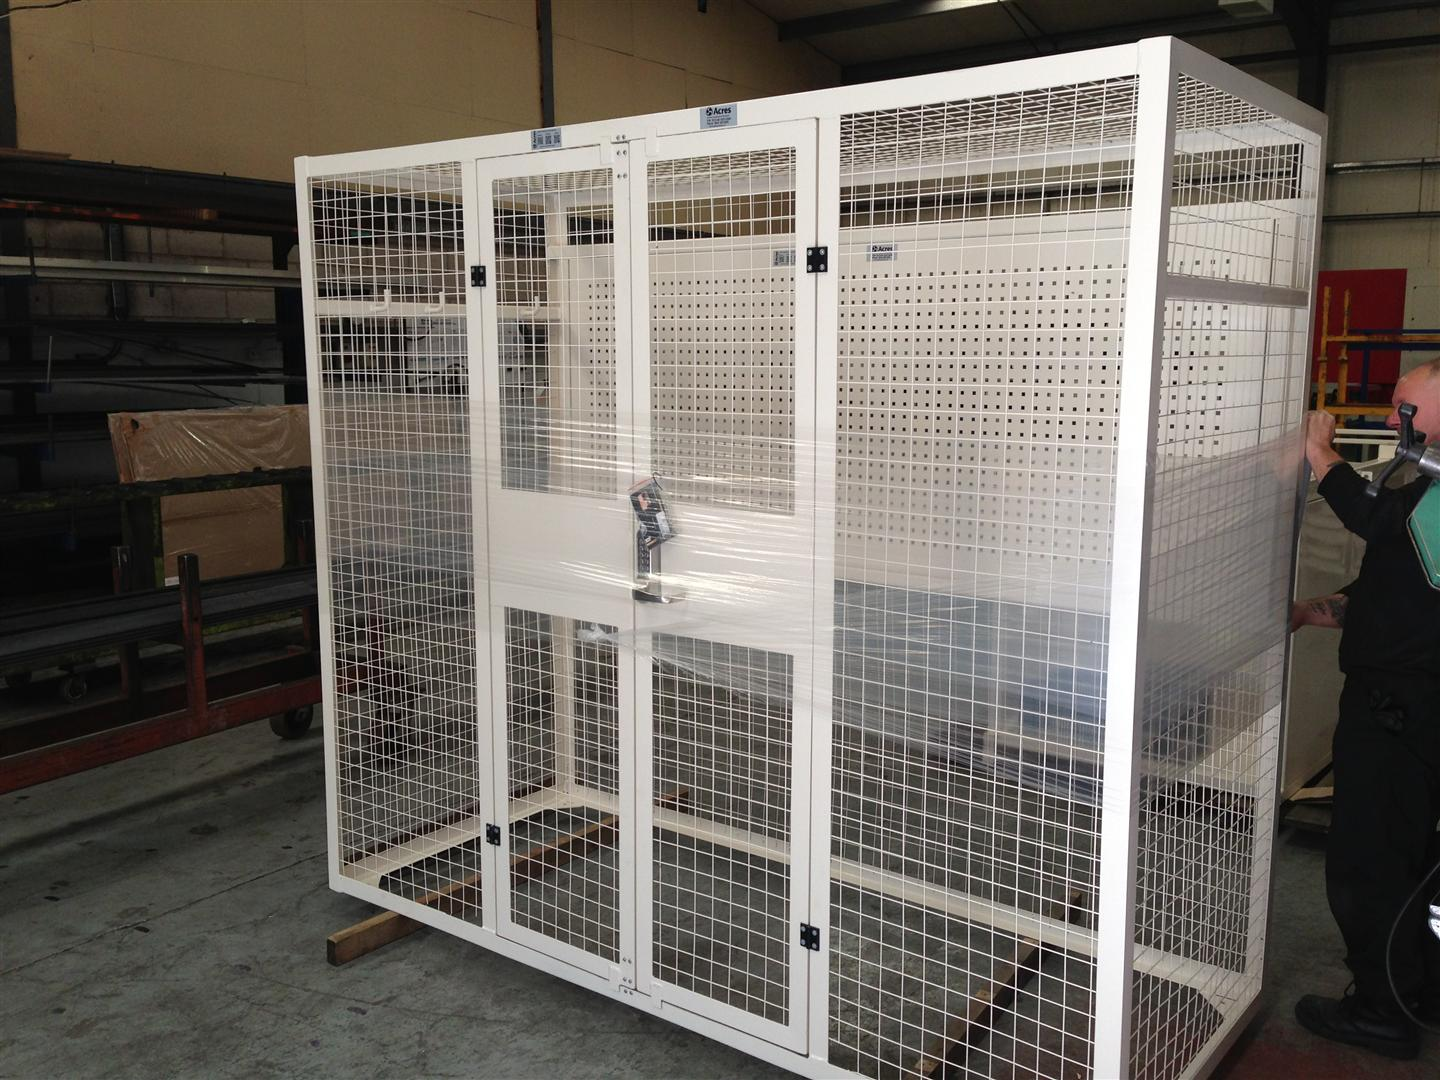 AD-256-2013-09 – Lifting Equipment Storage Cage